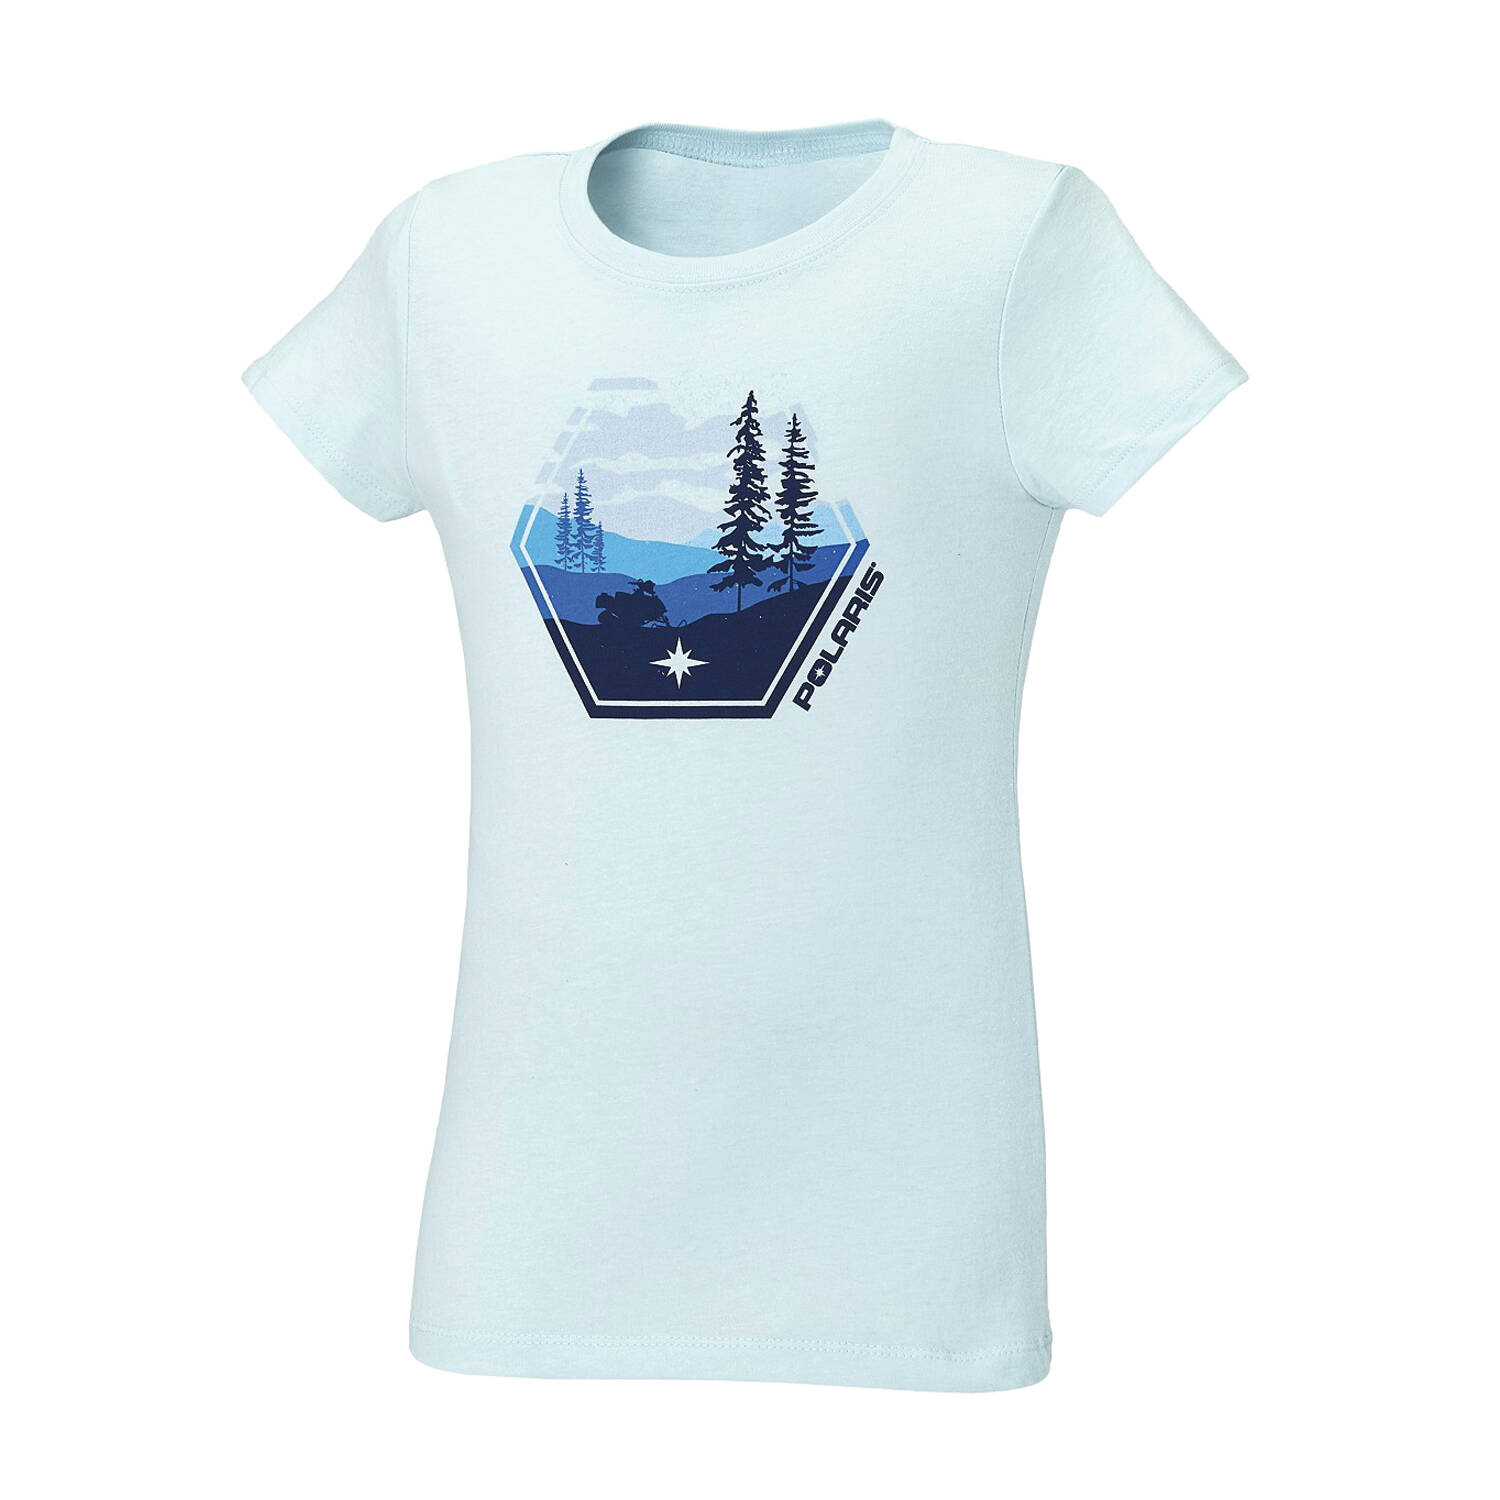 Youth Scenic Graphic T-Shirt with Polaris® Logo, Navy Heather